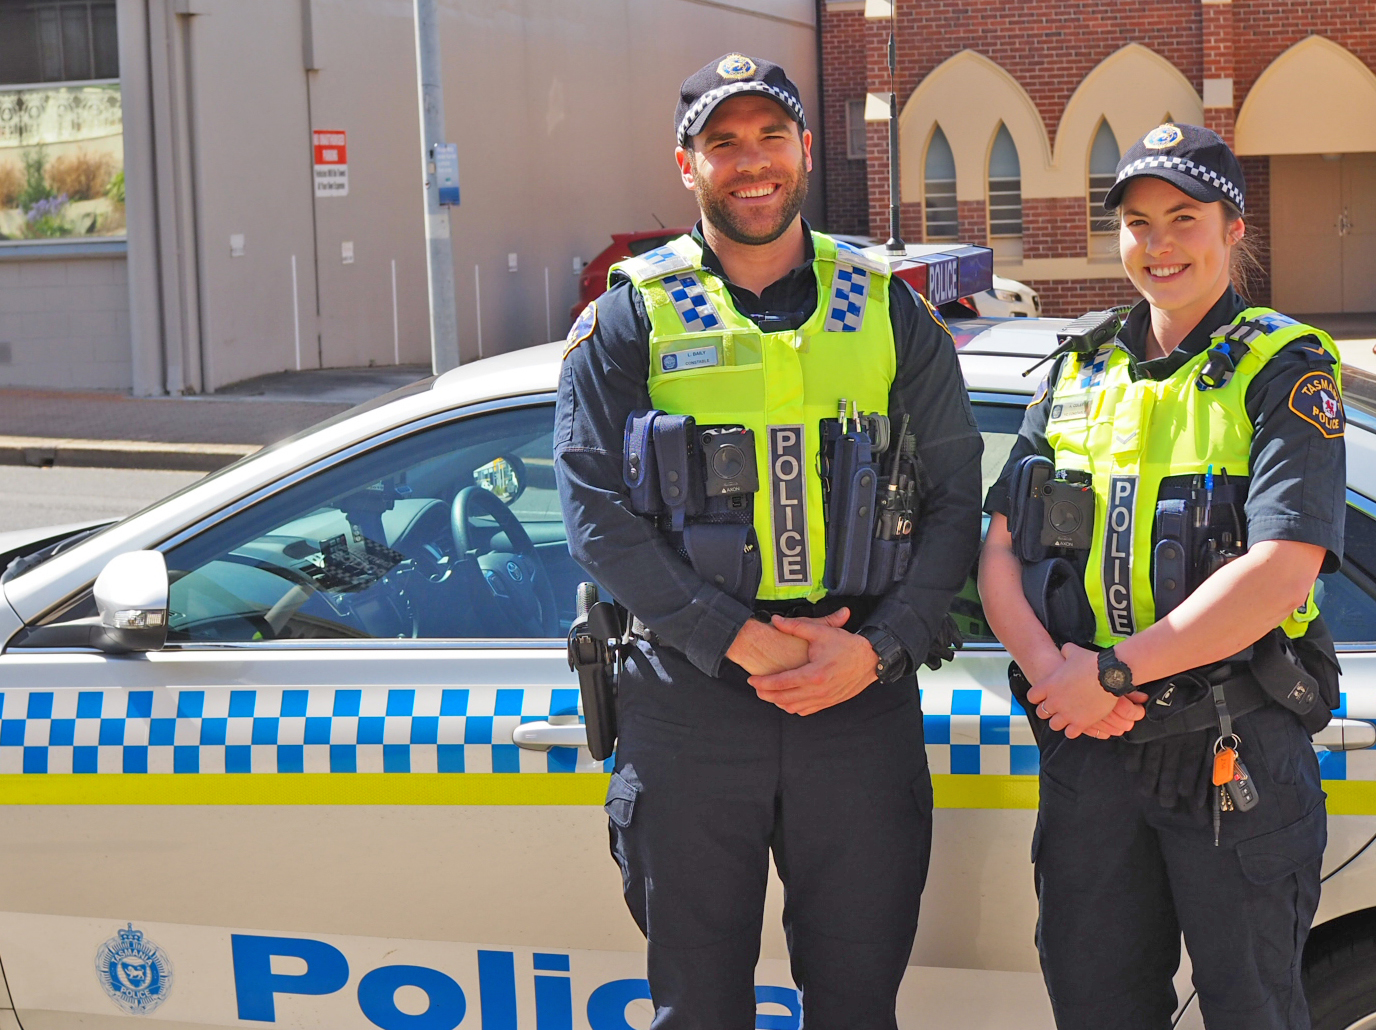 Constables Lee Baily and Annika Coles at Burnie launch of Body Worn Cameras